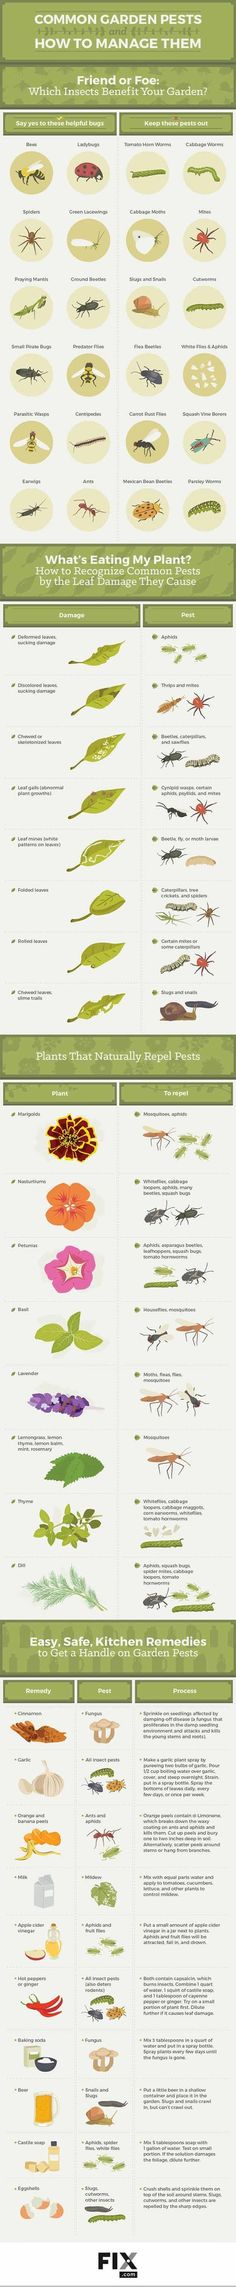 Garden Pests Identification & Natural Pest Control Ideas by Pioneer Settler at http://pioneersettler.com/garden-pests-common/